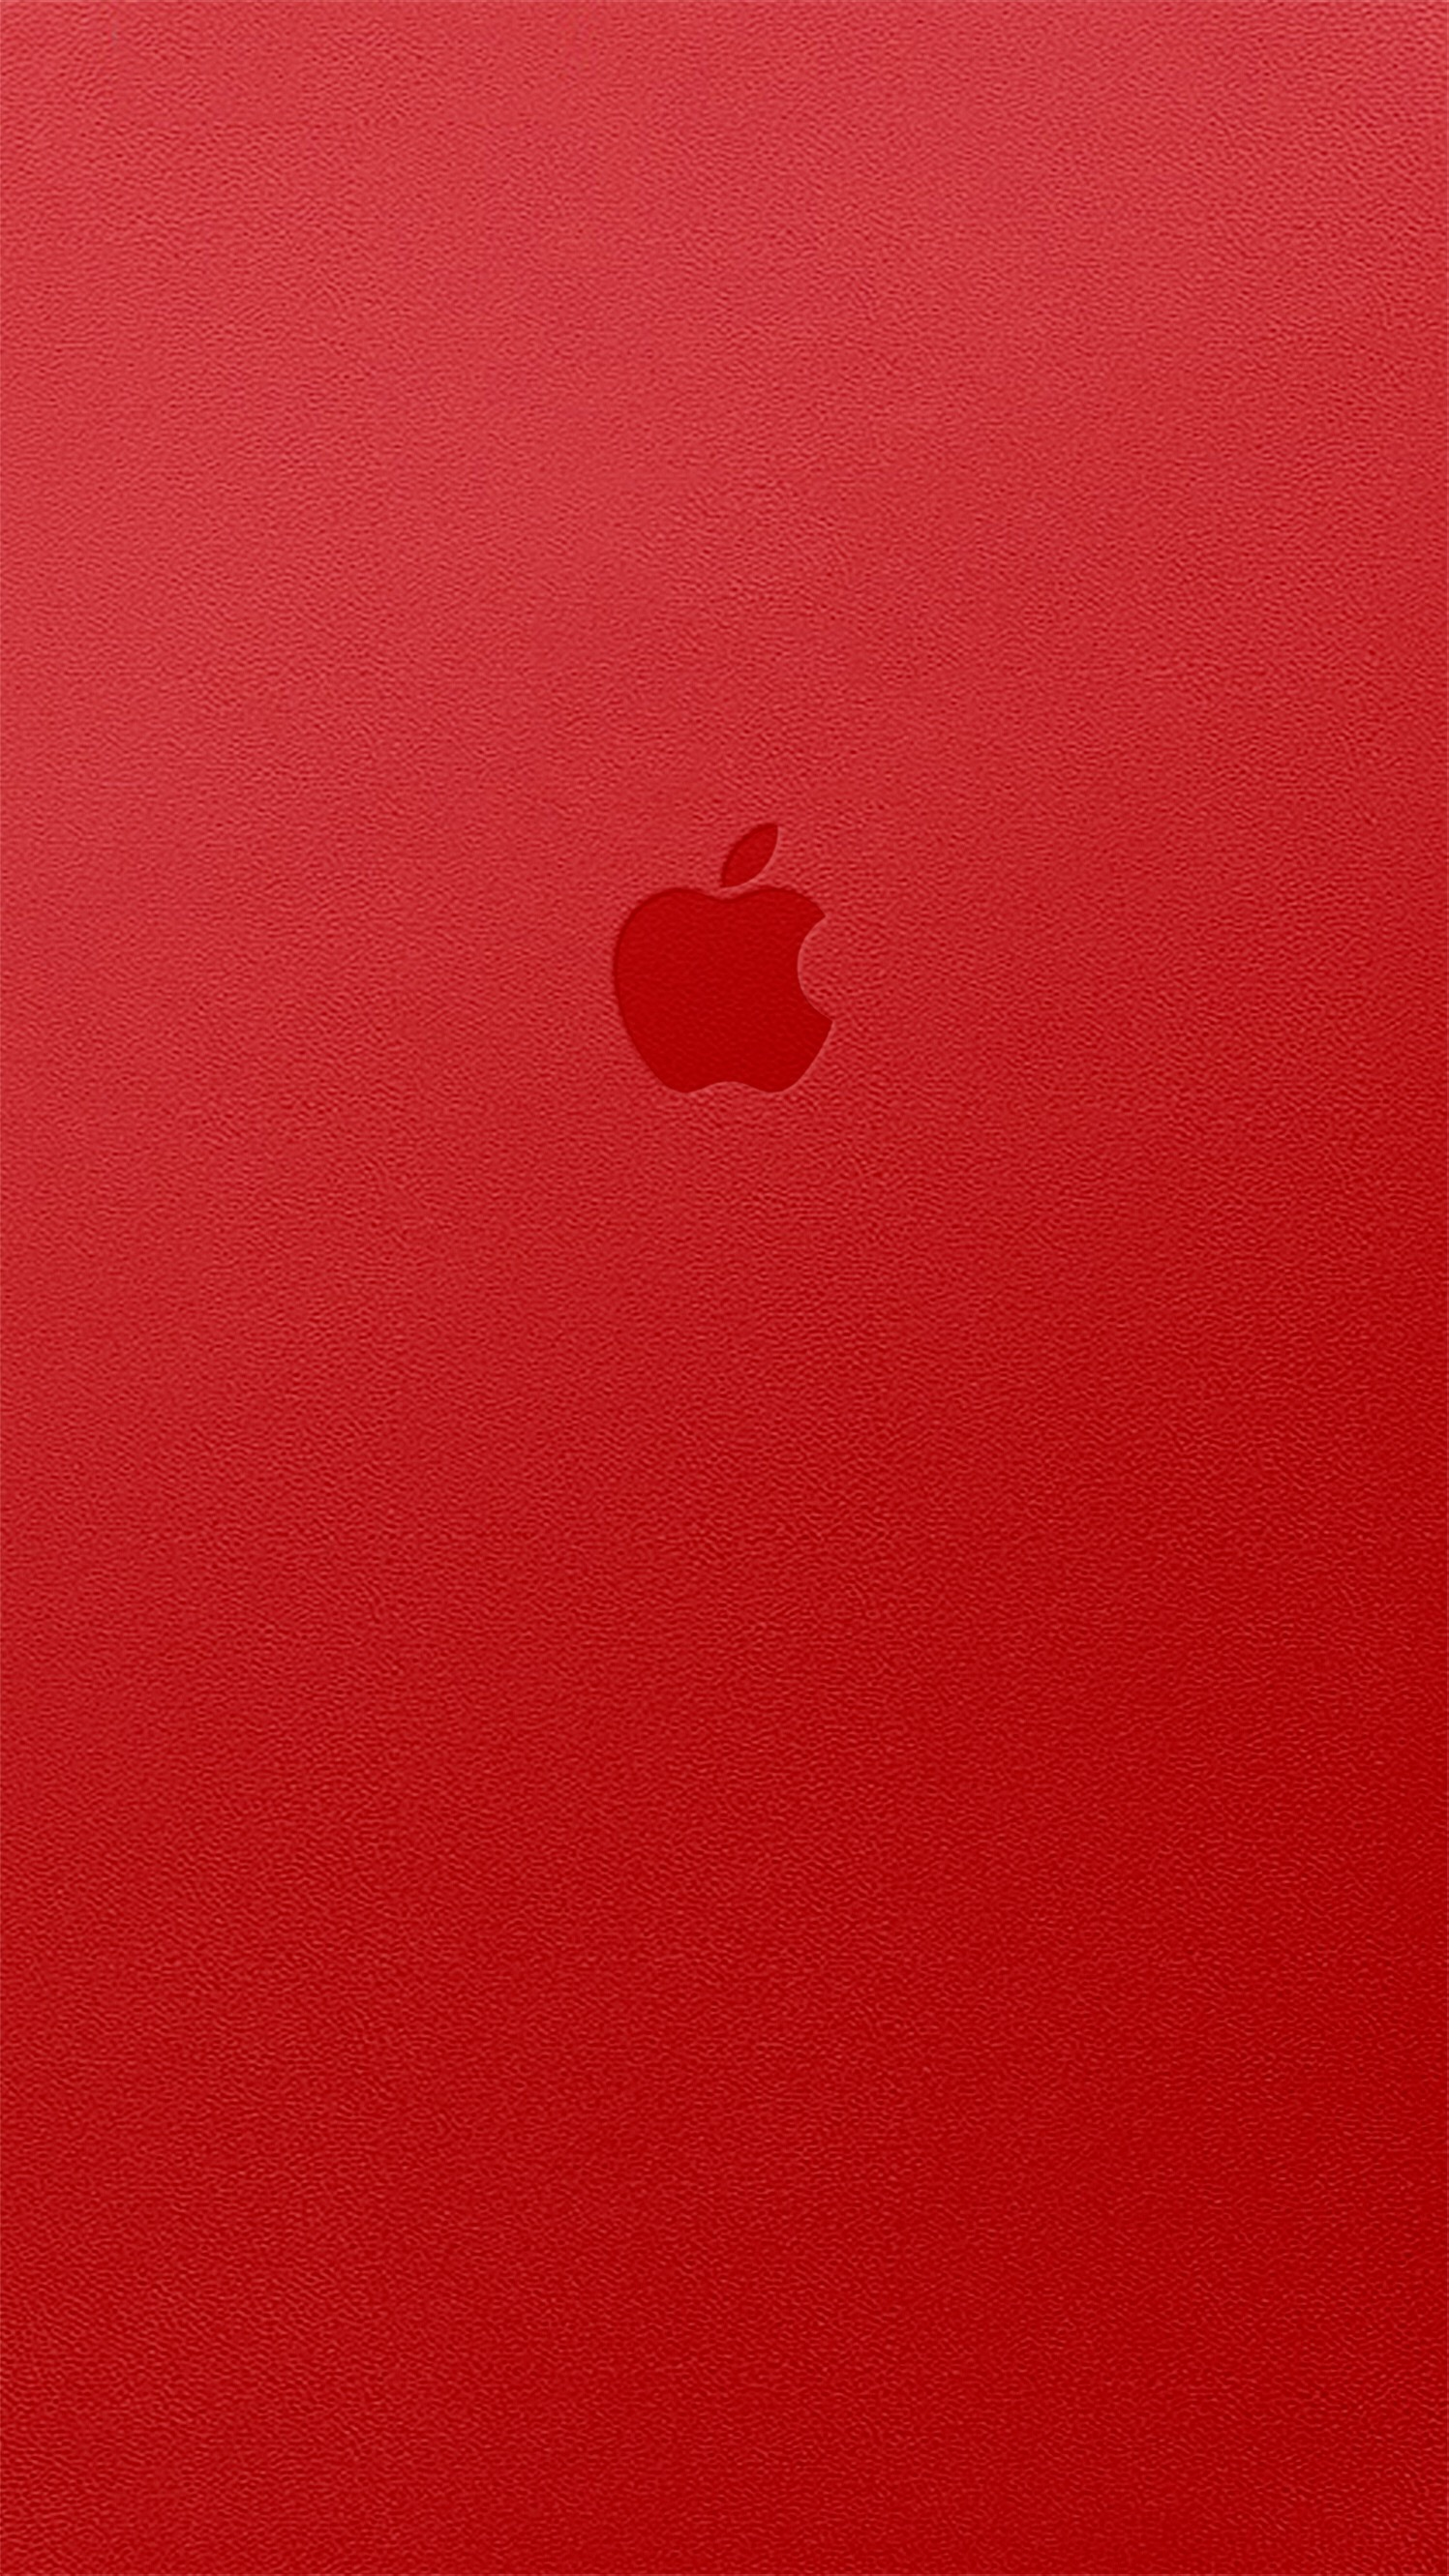 Product Red By JasonZigrino